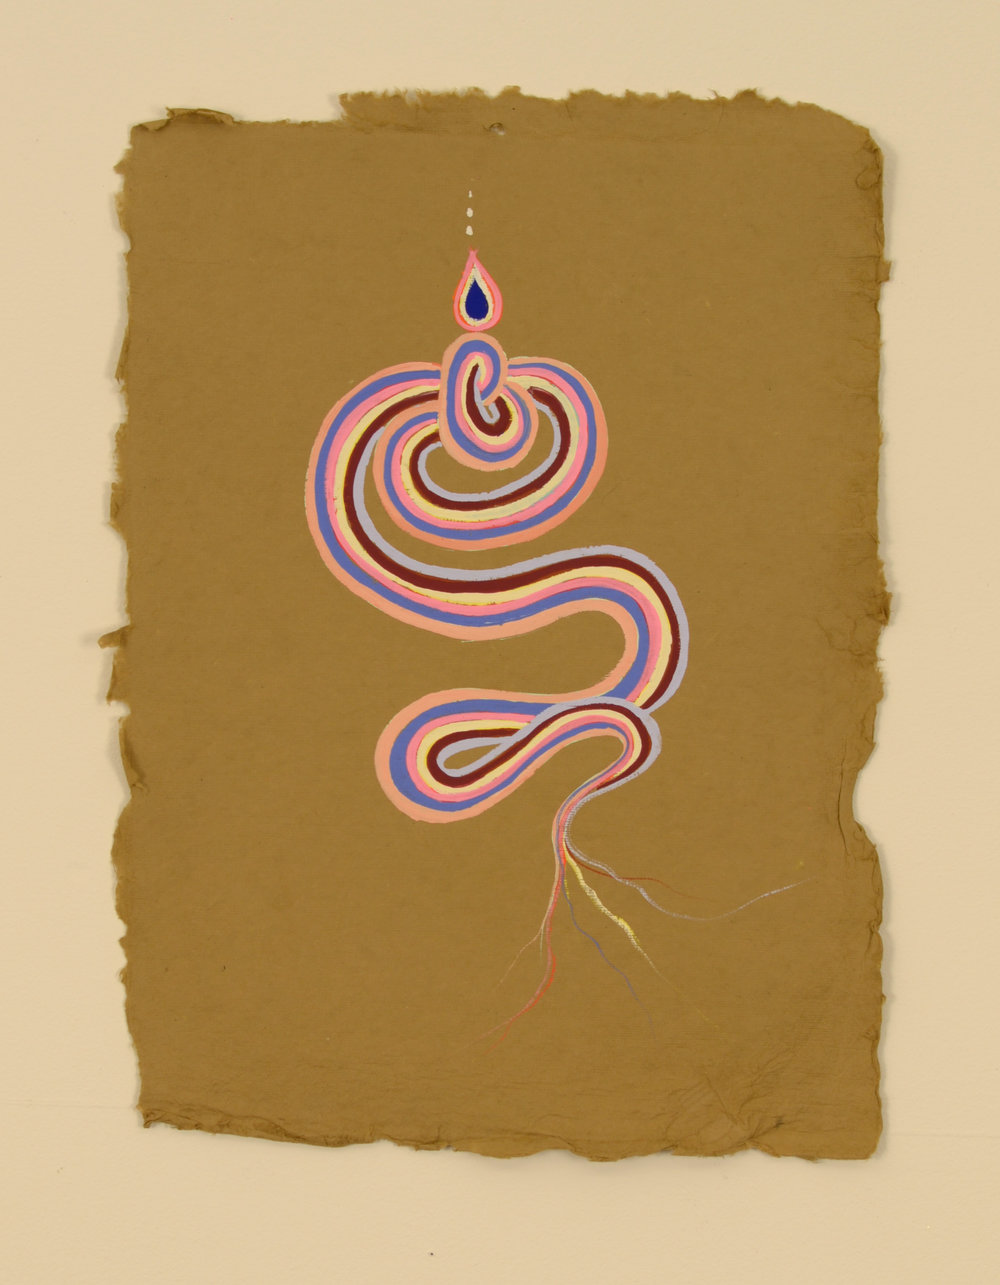 Serpent Tantra #2